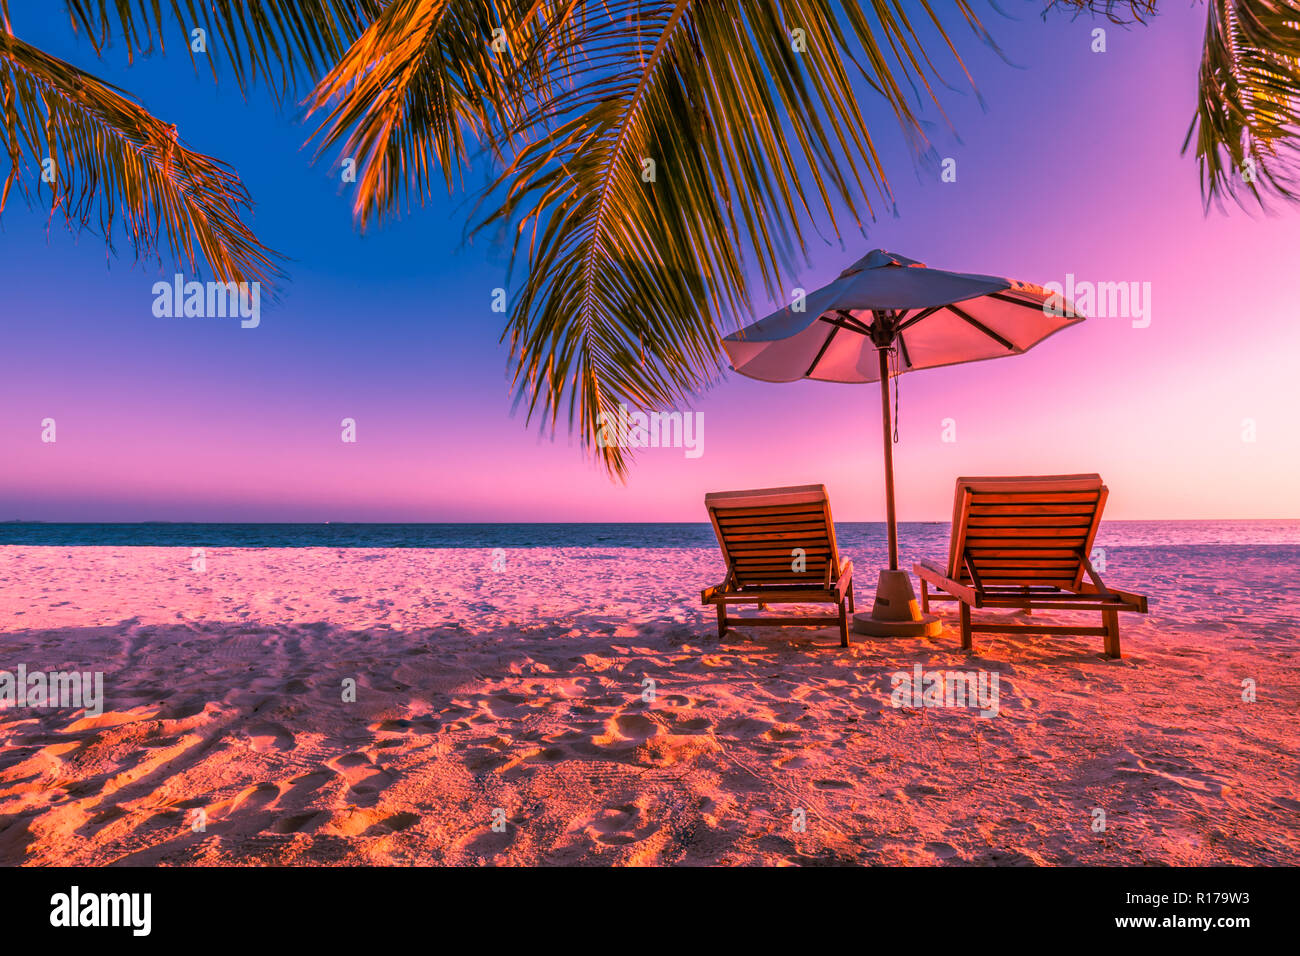 Perfect Sunset Beach Two Sun Chairs With Umbrella Under